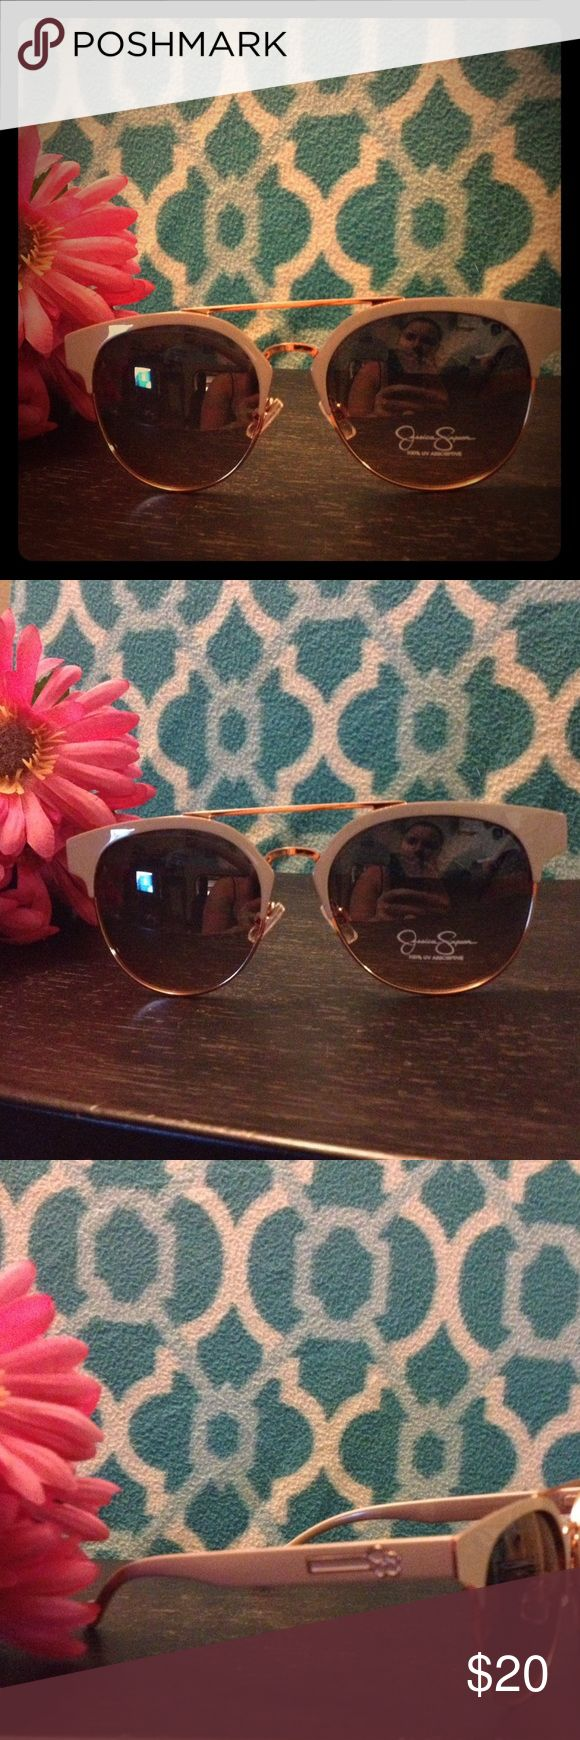 ✨Jessica Simpson Retro Sunglasses✨ Jessica Simpson Retro style sunglasses, gold color under frame and midsection, taupe top frame and sides, Jessica Simpson logo on sides. Side cushions for nose, comfortable and super cute!✨✨✨ #retro #jessicasimpson Jessica Simpson Accessories Glasses